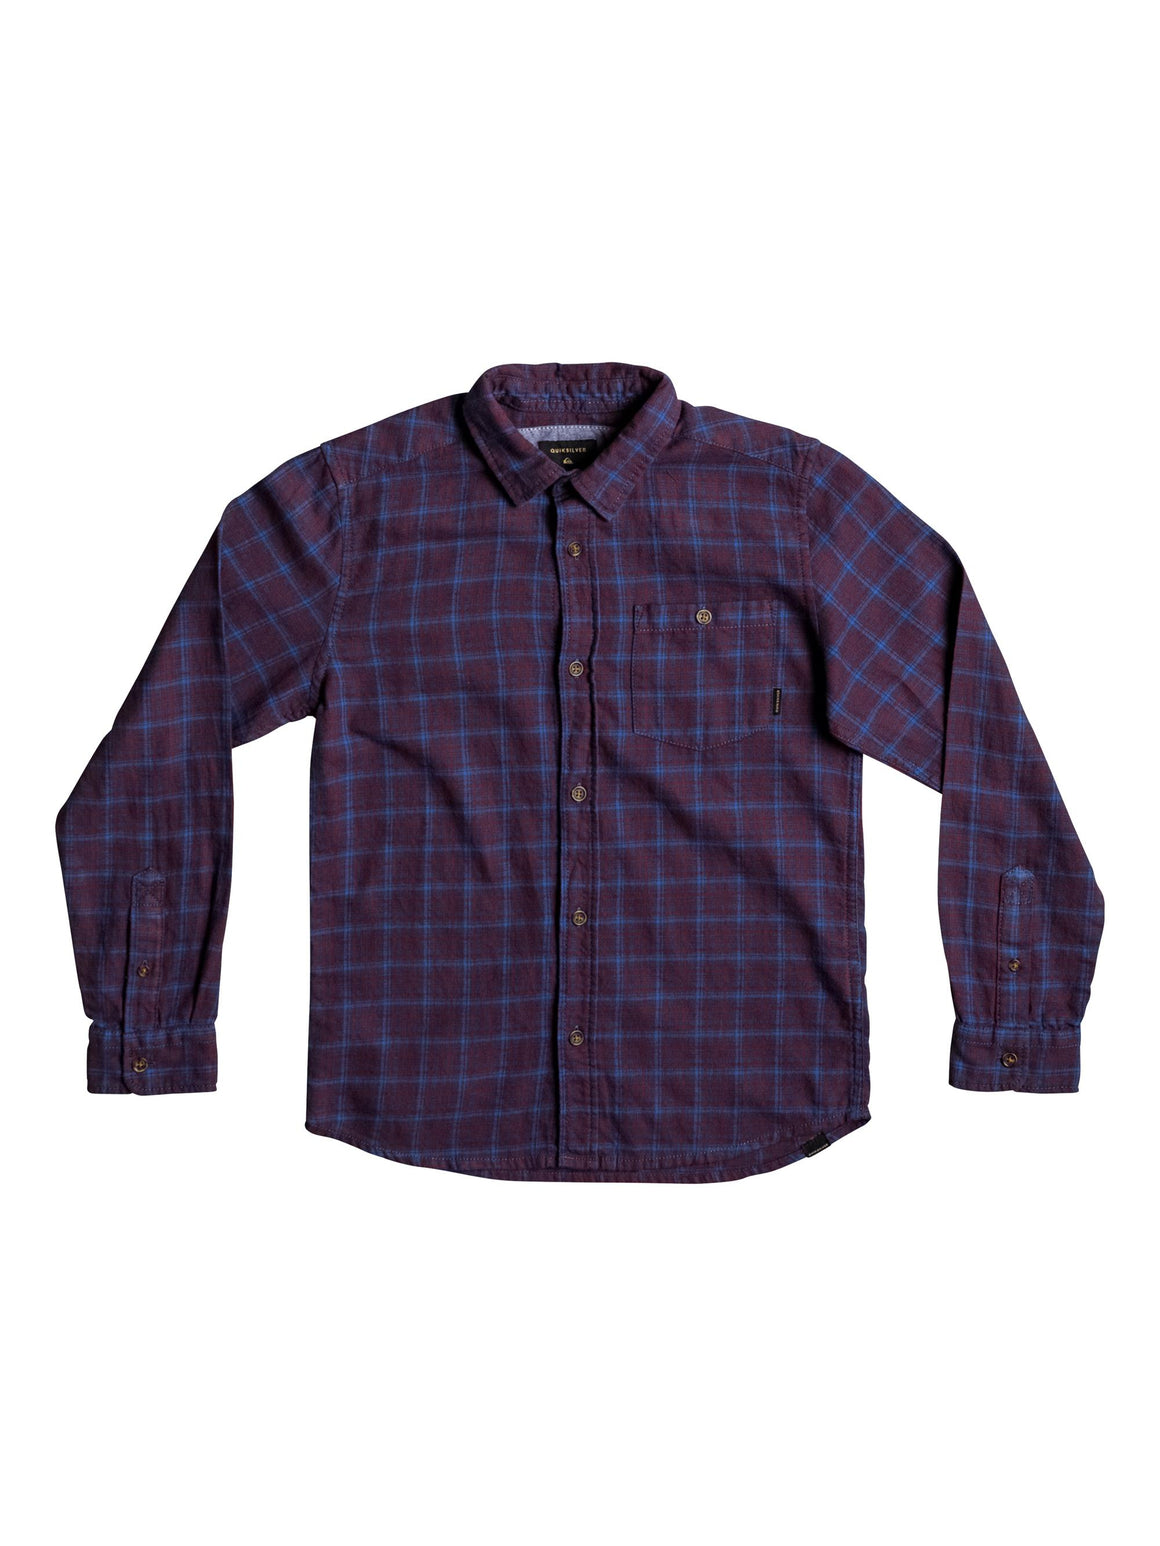 Phaser Plaid Flannel